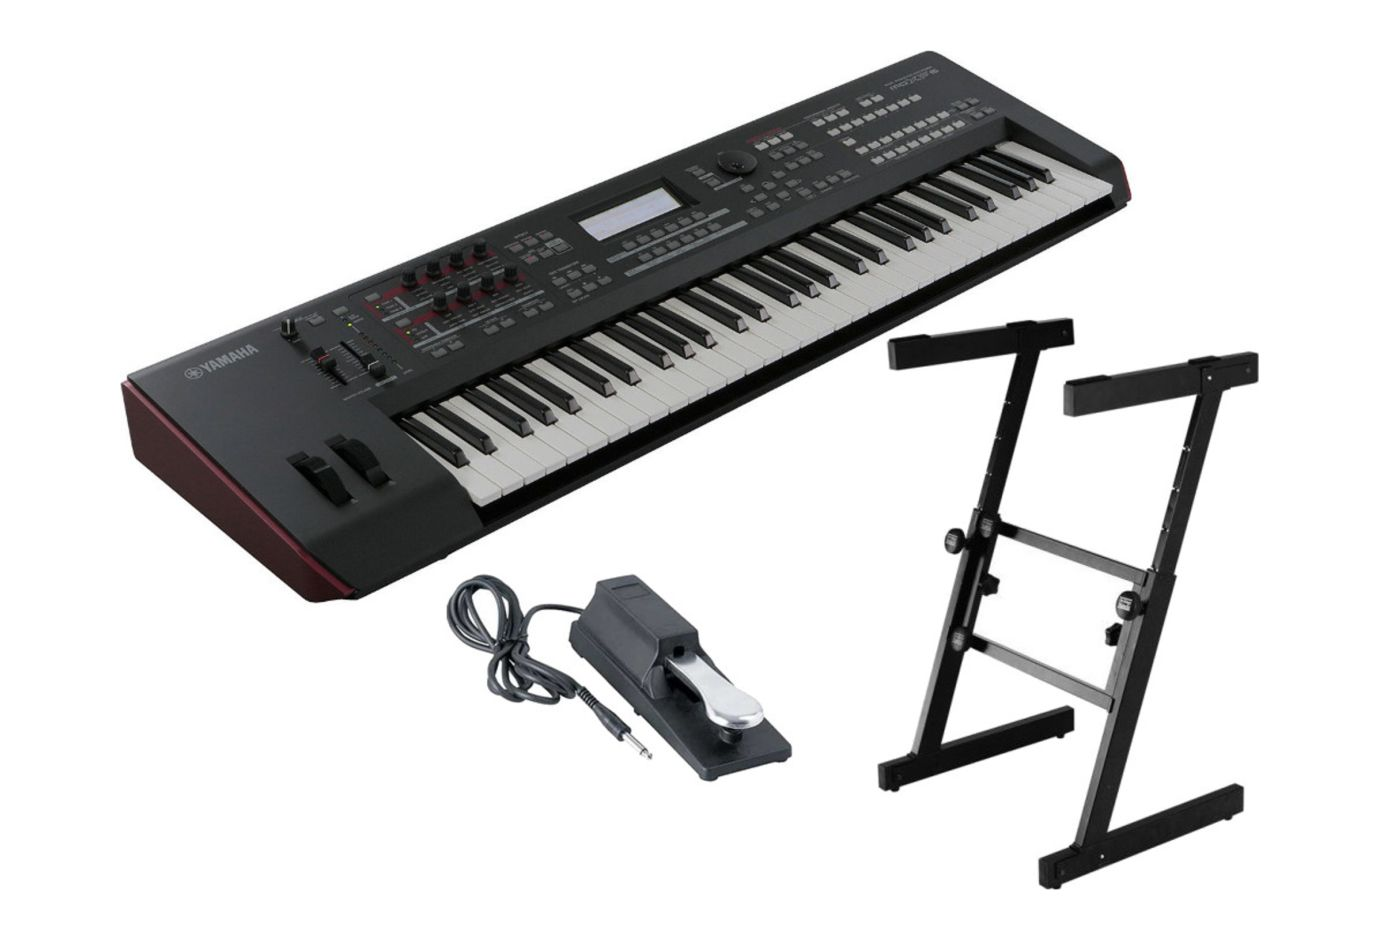 Yamaha Moxf6 Workstation Keyboard : yamaha moxf6 synth workstation keyboard bundle ~ Hamham.info Haus und Dekorationen